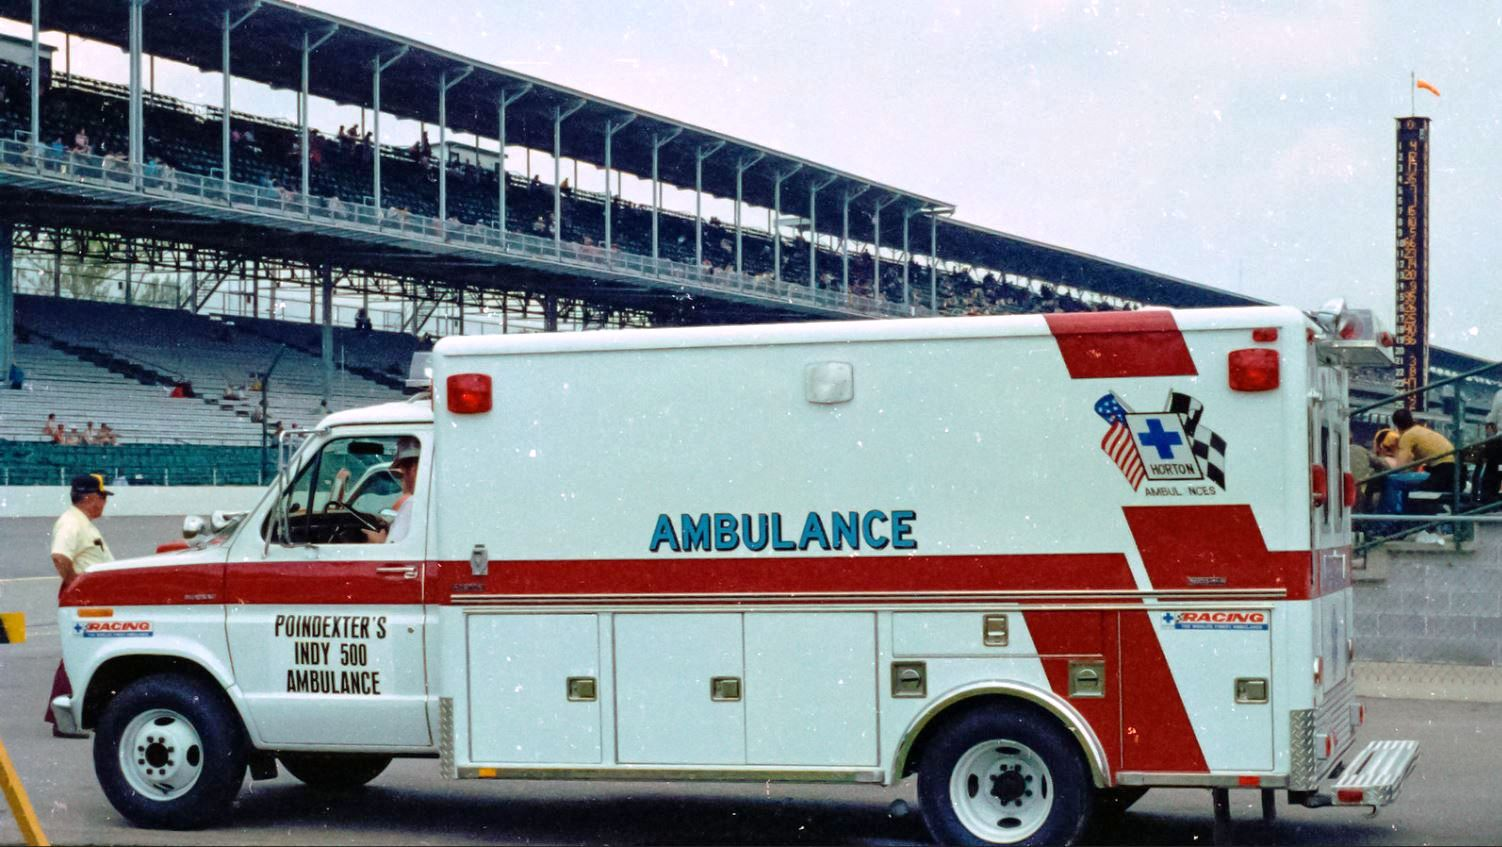 1980 ambualnce - 1